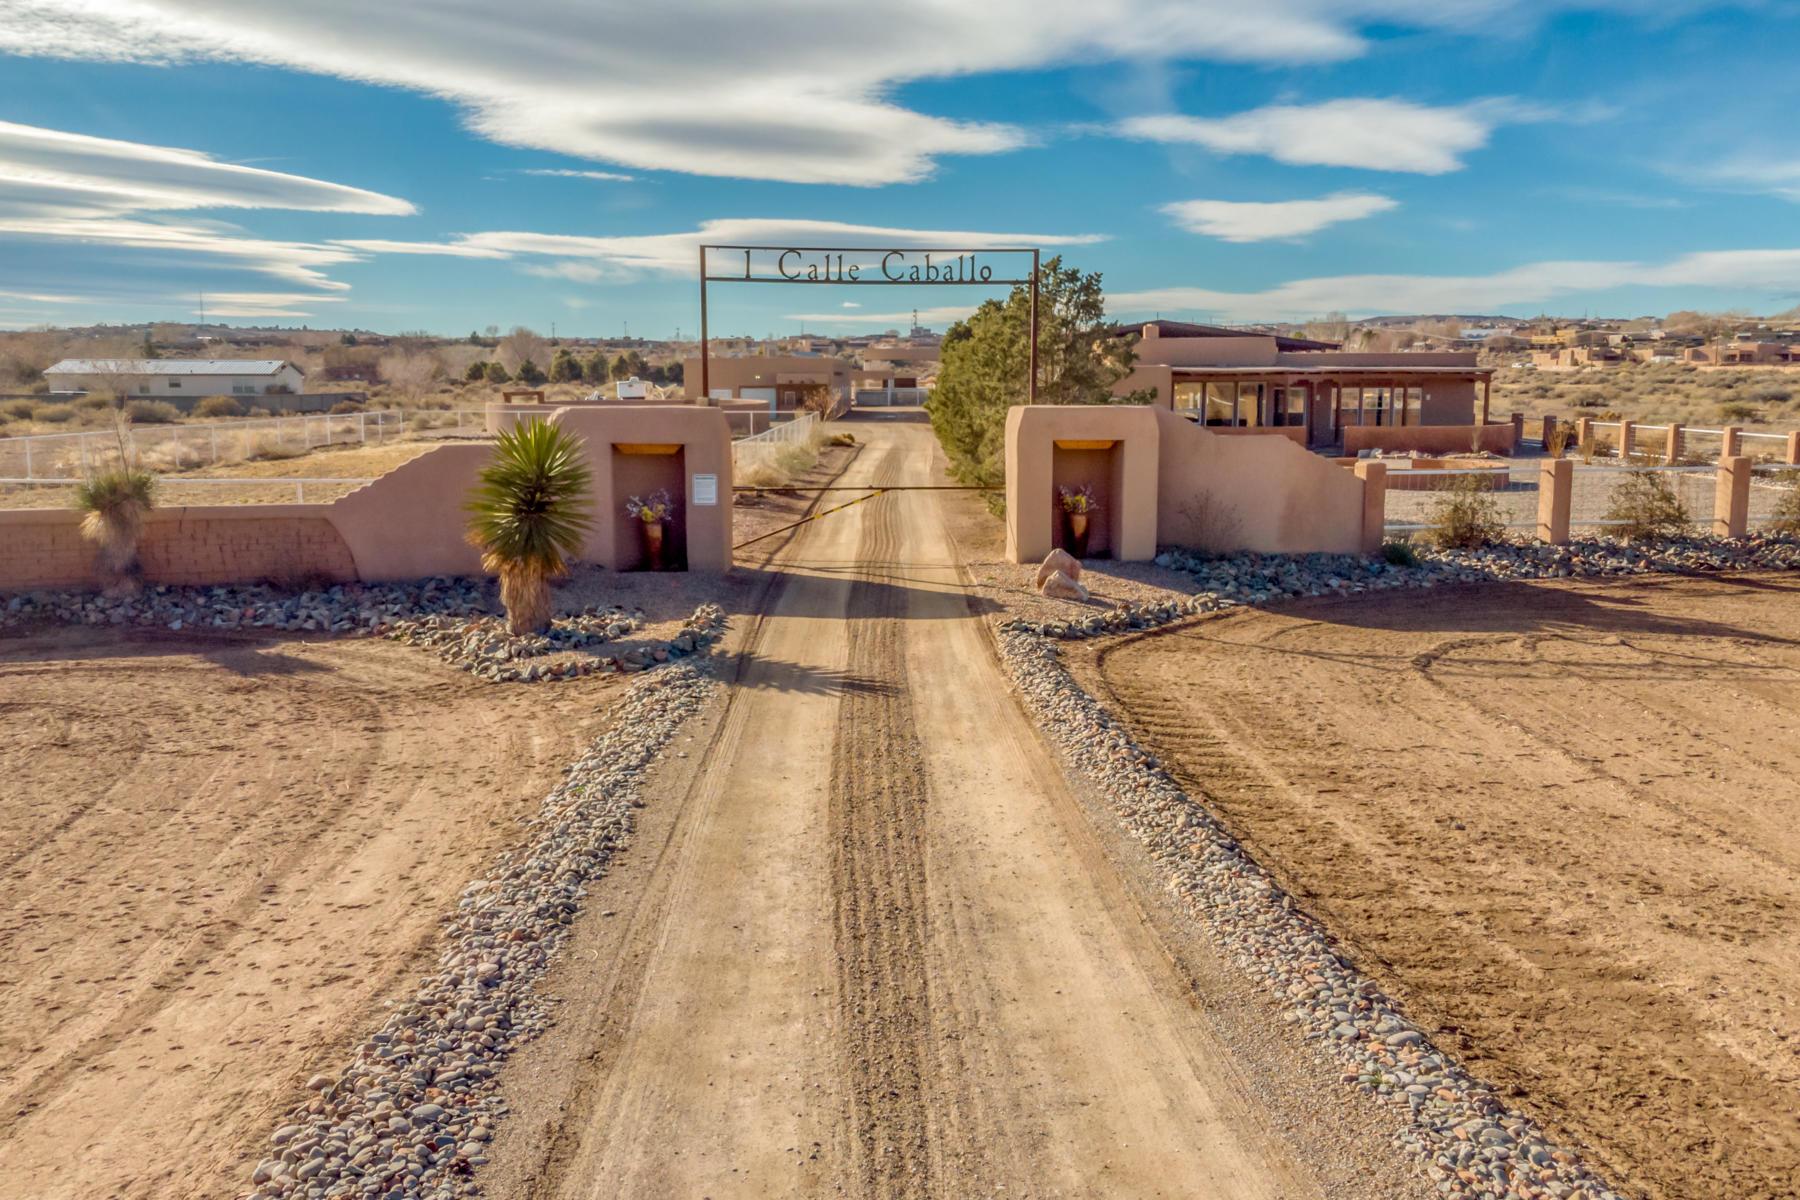 Welcome to this one of a kind, 7 acre property in historic Corrales, NM. Outdoor pens, foaling barn/shop, heated/cooled 11-stall show barn w/studio and office, covered arena, round pen, 4 loafing sheds and 3.5 acres irrigated pasture w/MRGCD are a horseman's dream. Looking for investment property? Detached Casita and separate studio are currently being rented out, creating recurring monthly income. This property has also been used by local movie industry and has brought forth a generous amount of revenue! Looking to entertain? Ample room both inside and out of the ''Big House'' offers over 2,700 sf along with incredible views of Sandias. Tile floor, vigas and high ceilings accent this home throughout. Too many details to mention and so much to see! Come check out this oasis for yourself.